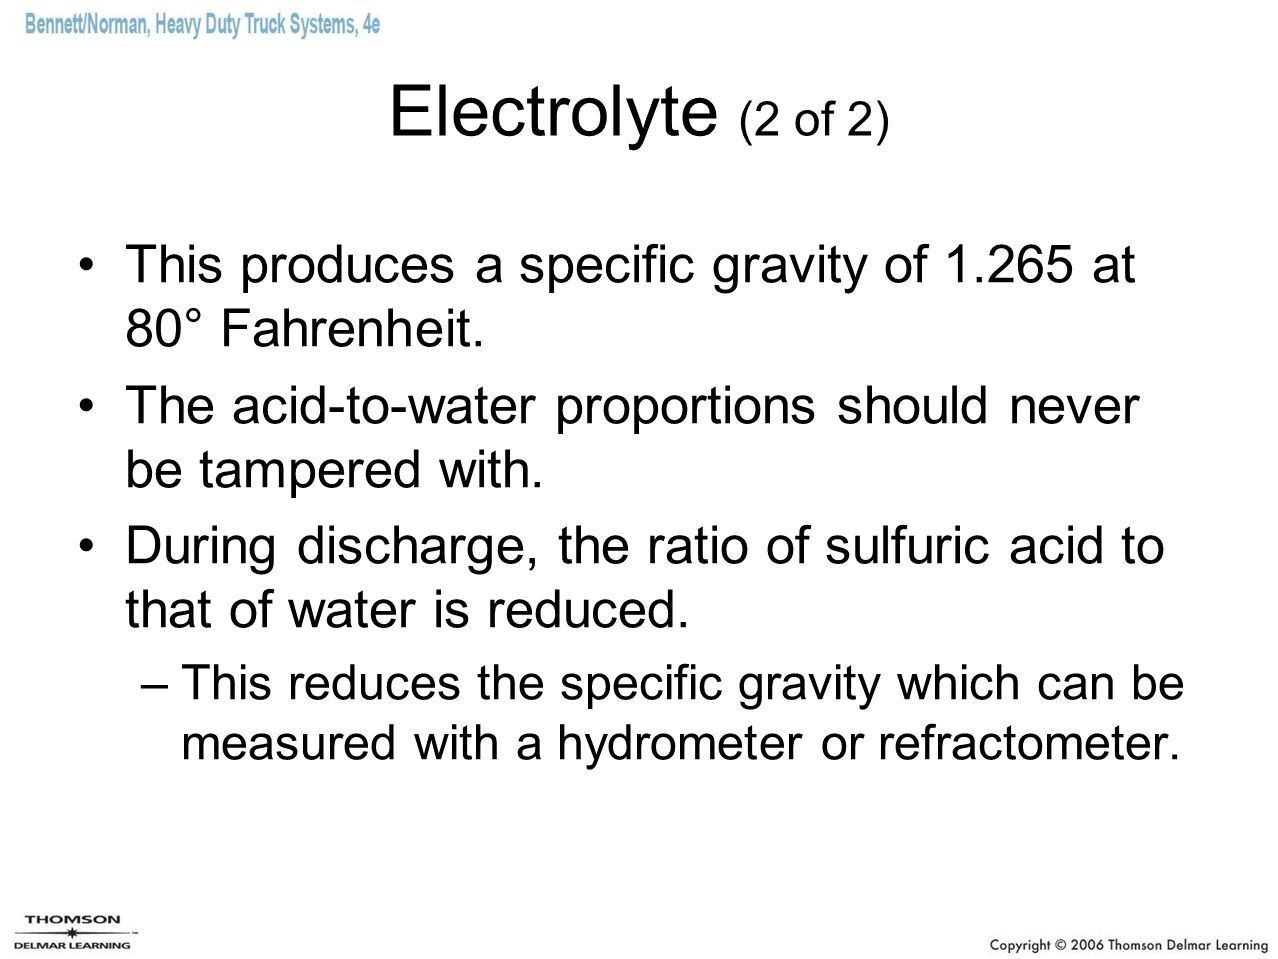 Electrolyte (2 of 2) This produces a specific gravity of 1.265 at 80° Fahrenheit. The acid-to-water proportions should never be tampered with.